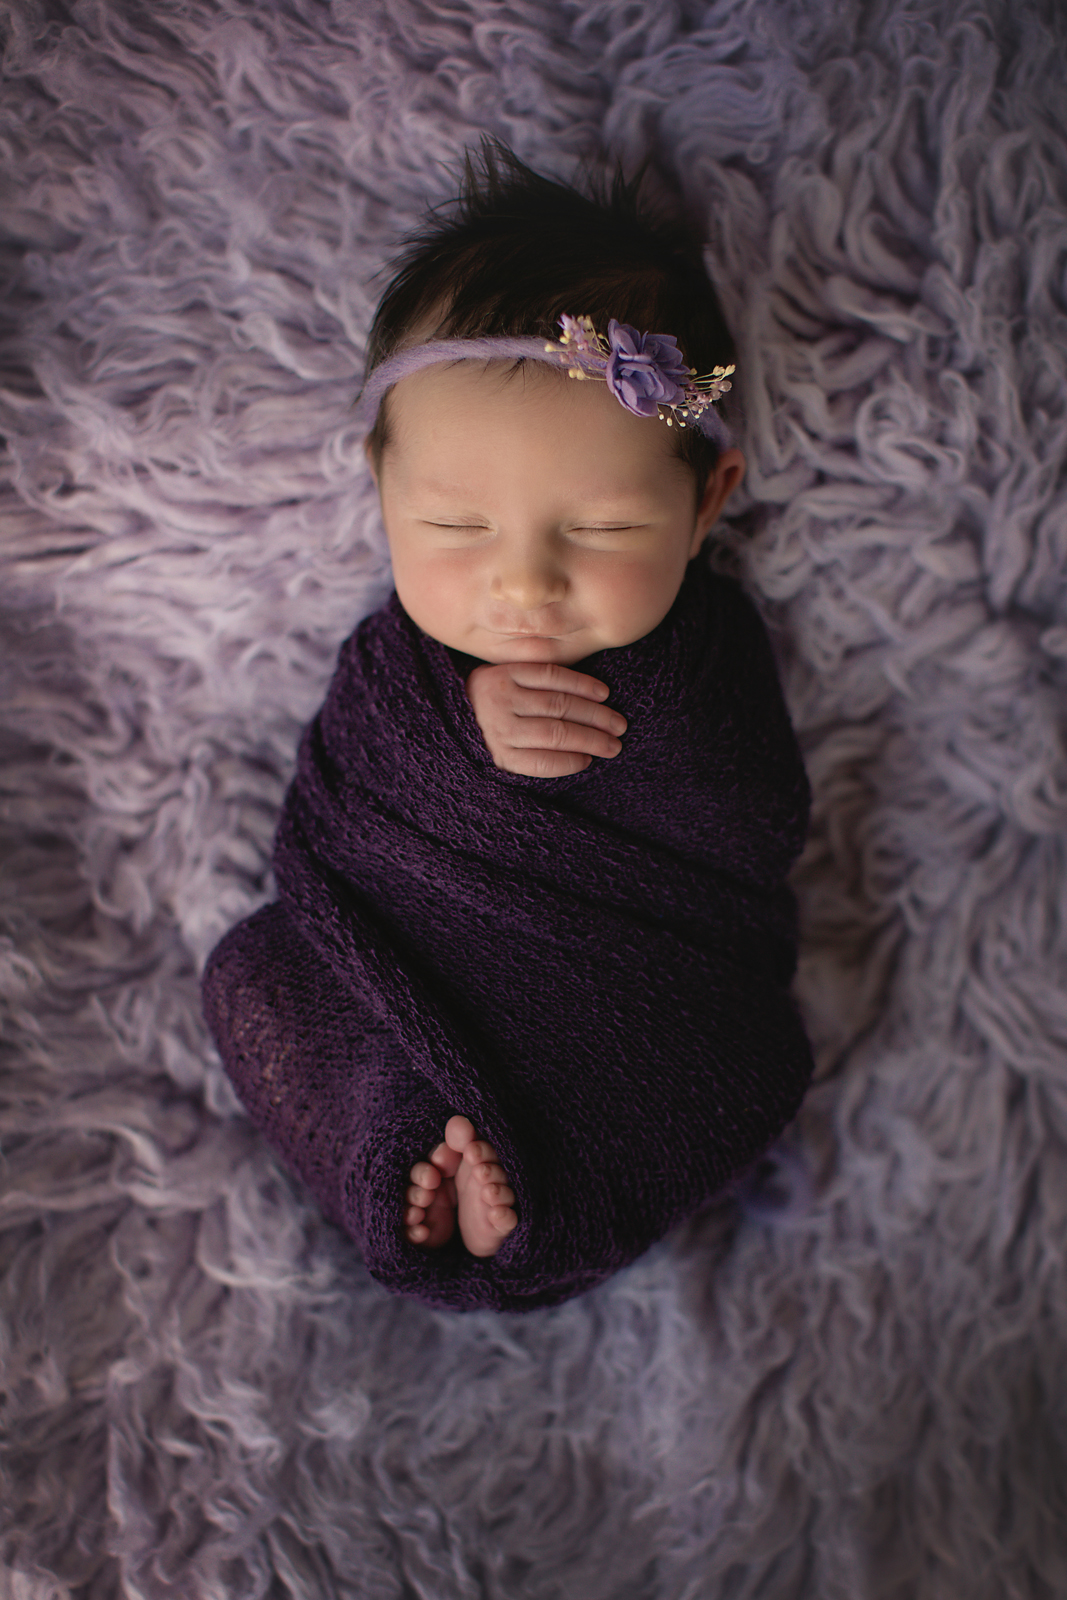 Smiling baby in a purple wrap on a purple rug. Newborn Photoshoot ideas. Calgary and Airdrie newborn baby photographer - Milashka Photography